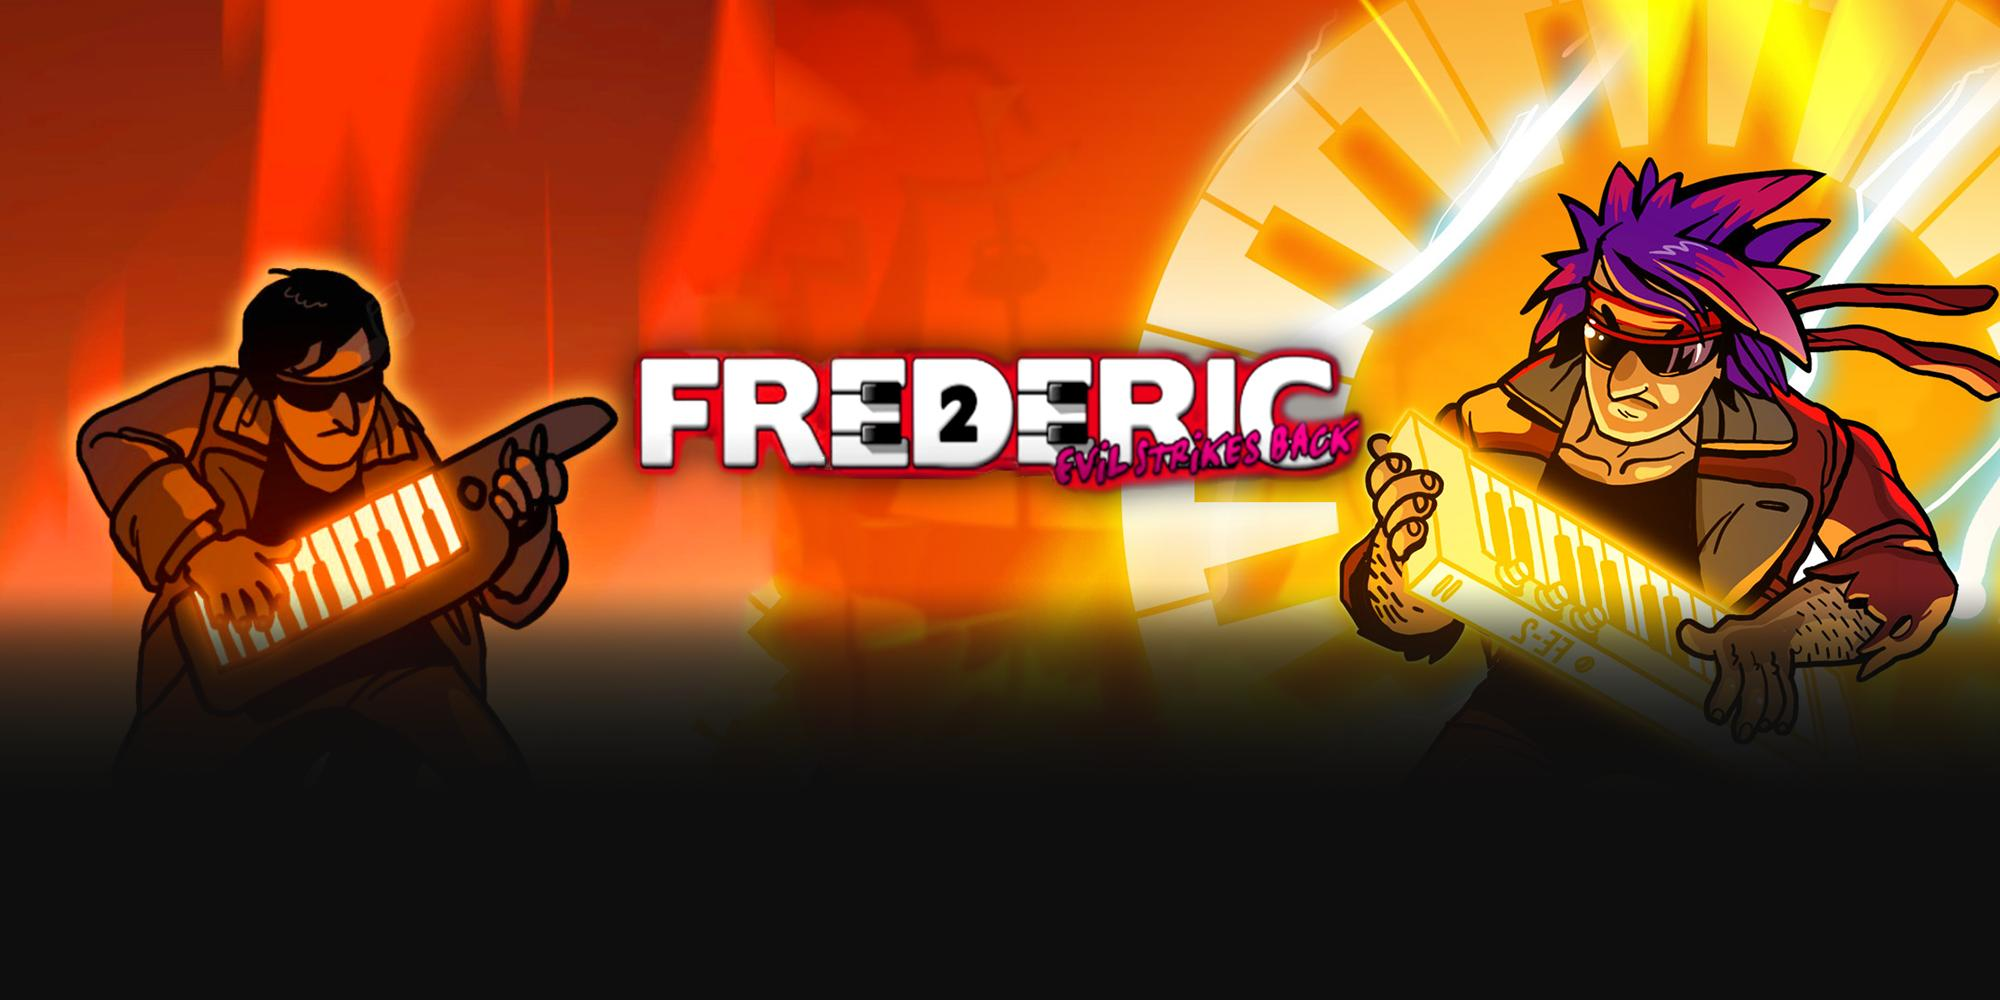 Frederic-Evil-Strikes-Back-Loading-Background.jpg